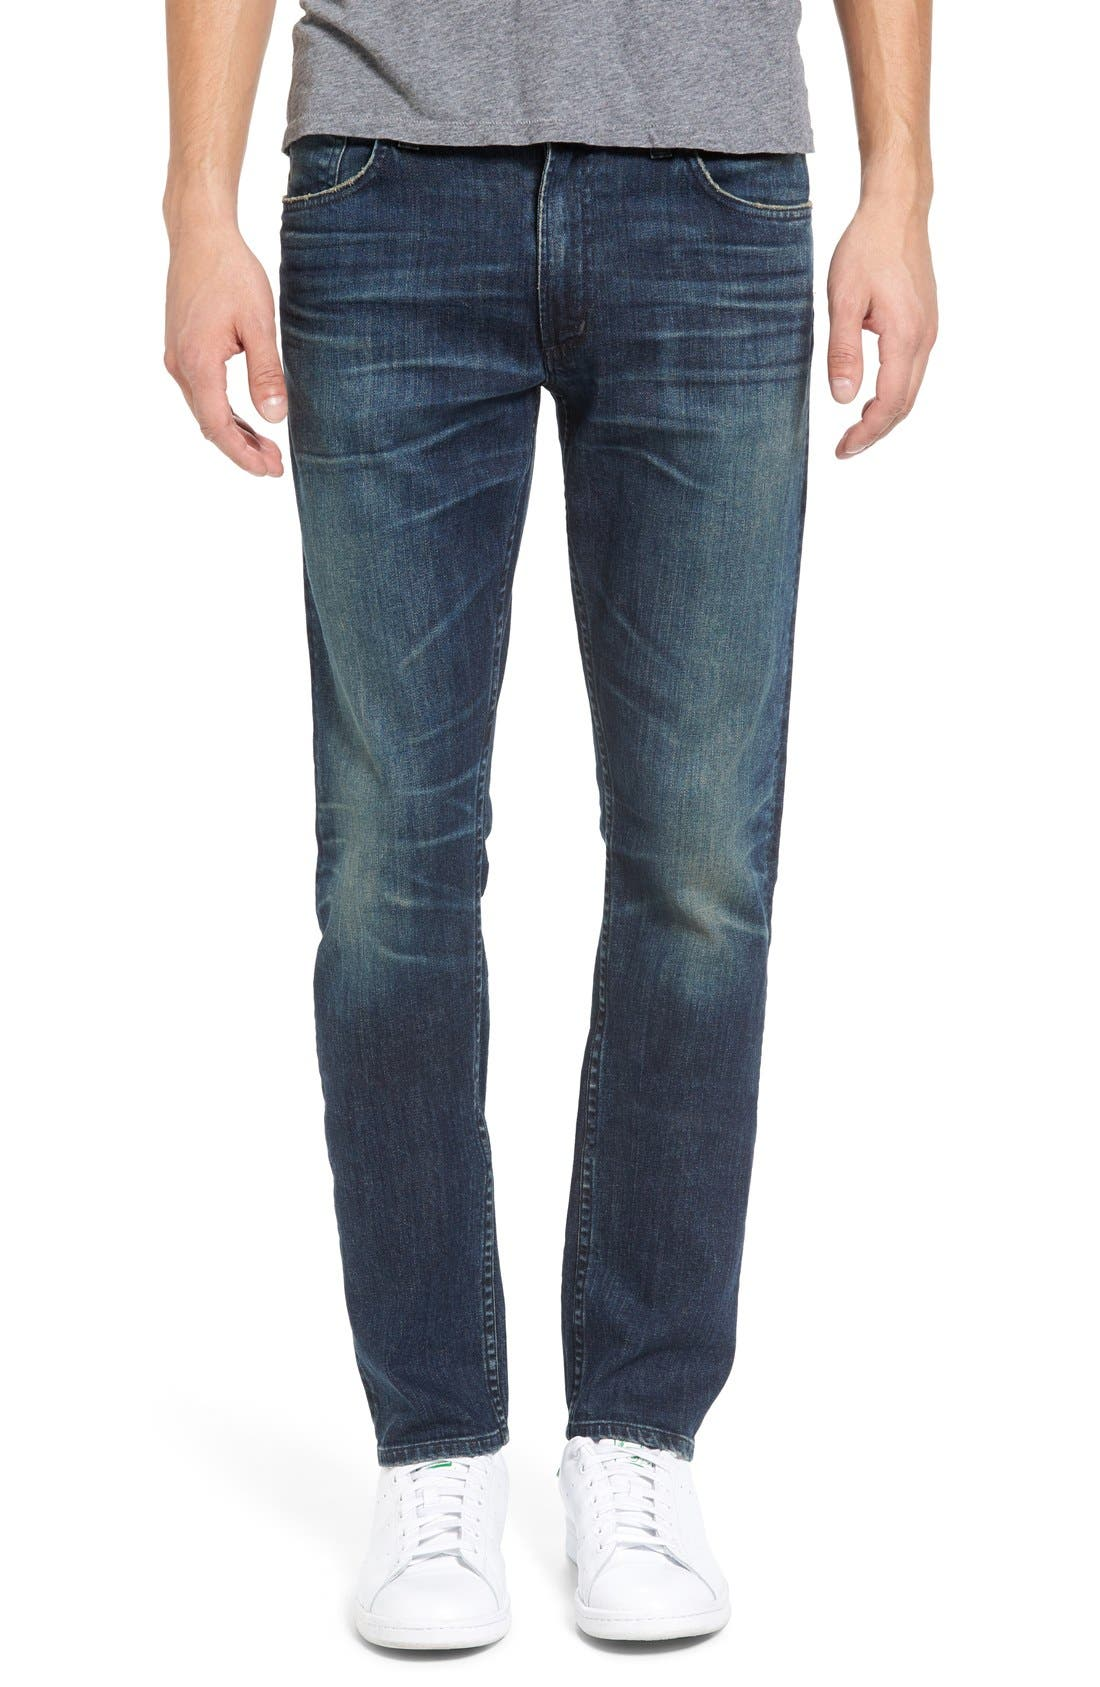 Bowery Slim Fit Jeans,                             Main thumbnail 1, color,                             Wild